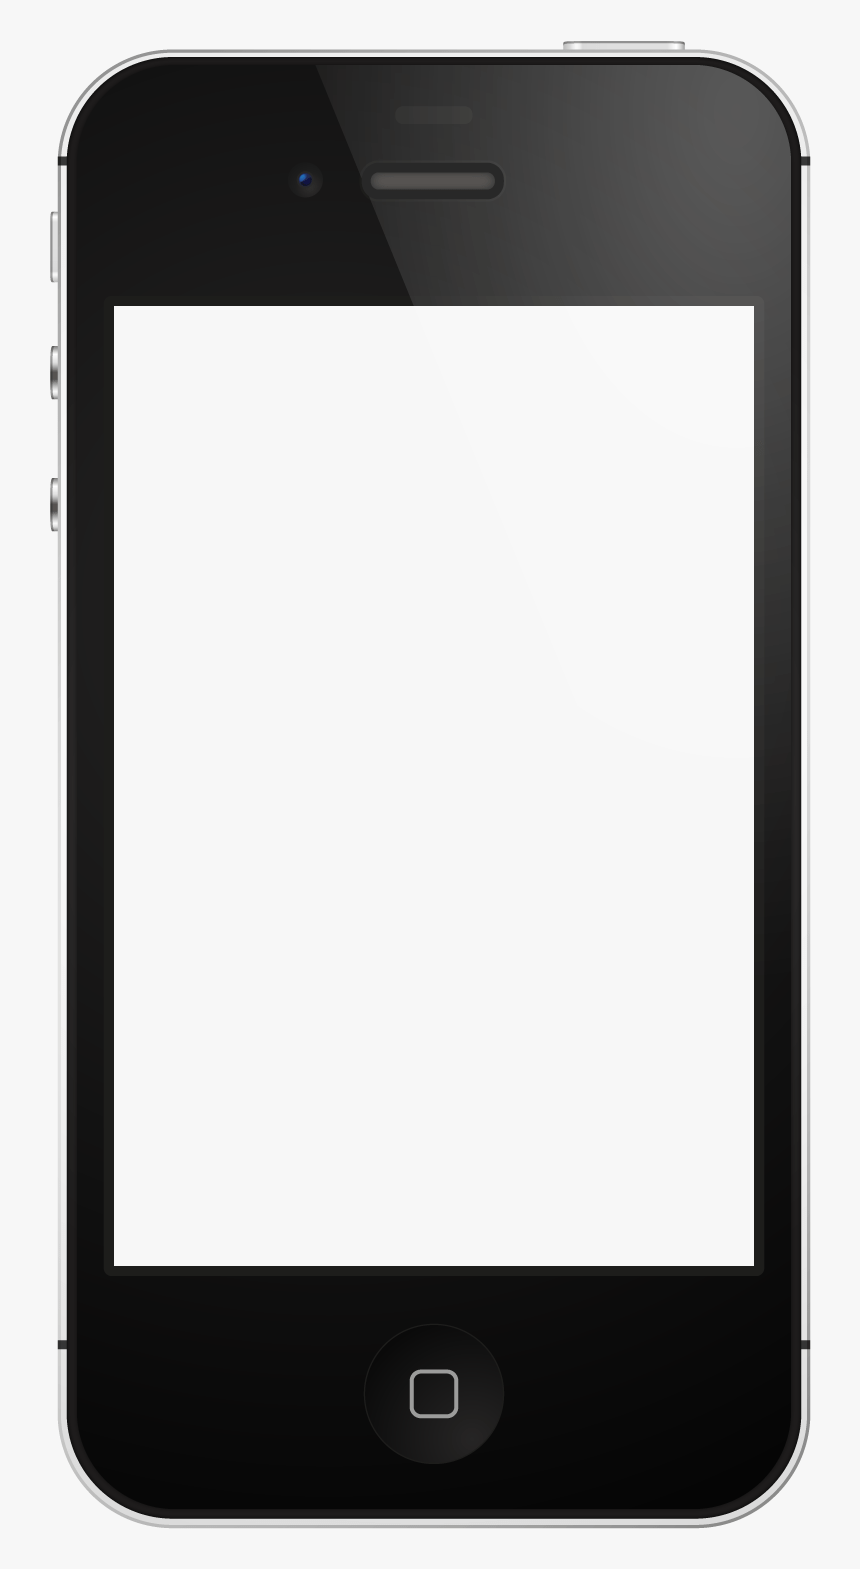 Cell Phone Images Free : phone, images, Cliparts, Download, Blank, Phone, Template,, Transparent, Image, PNGitem